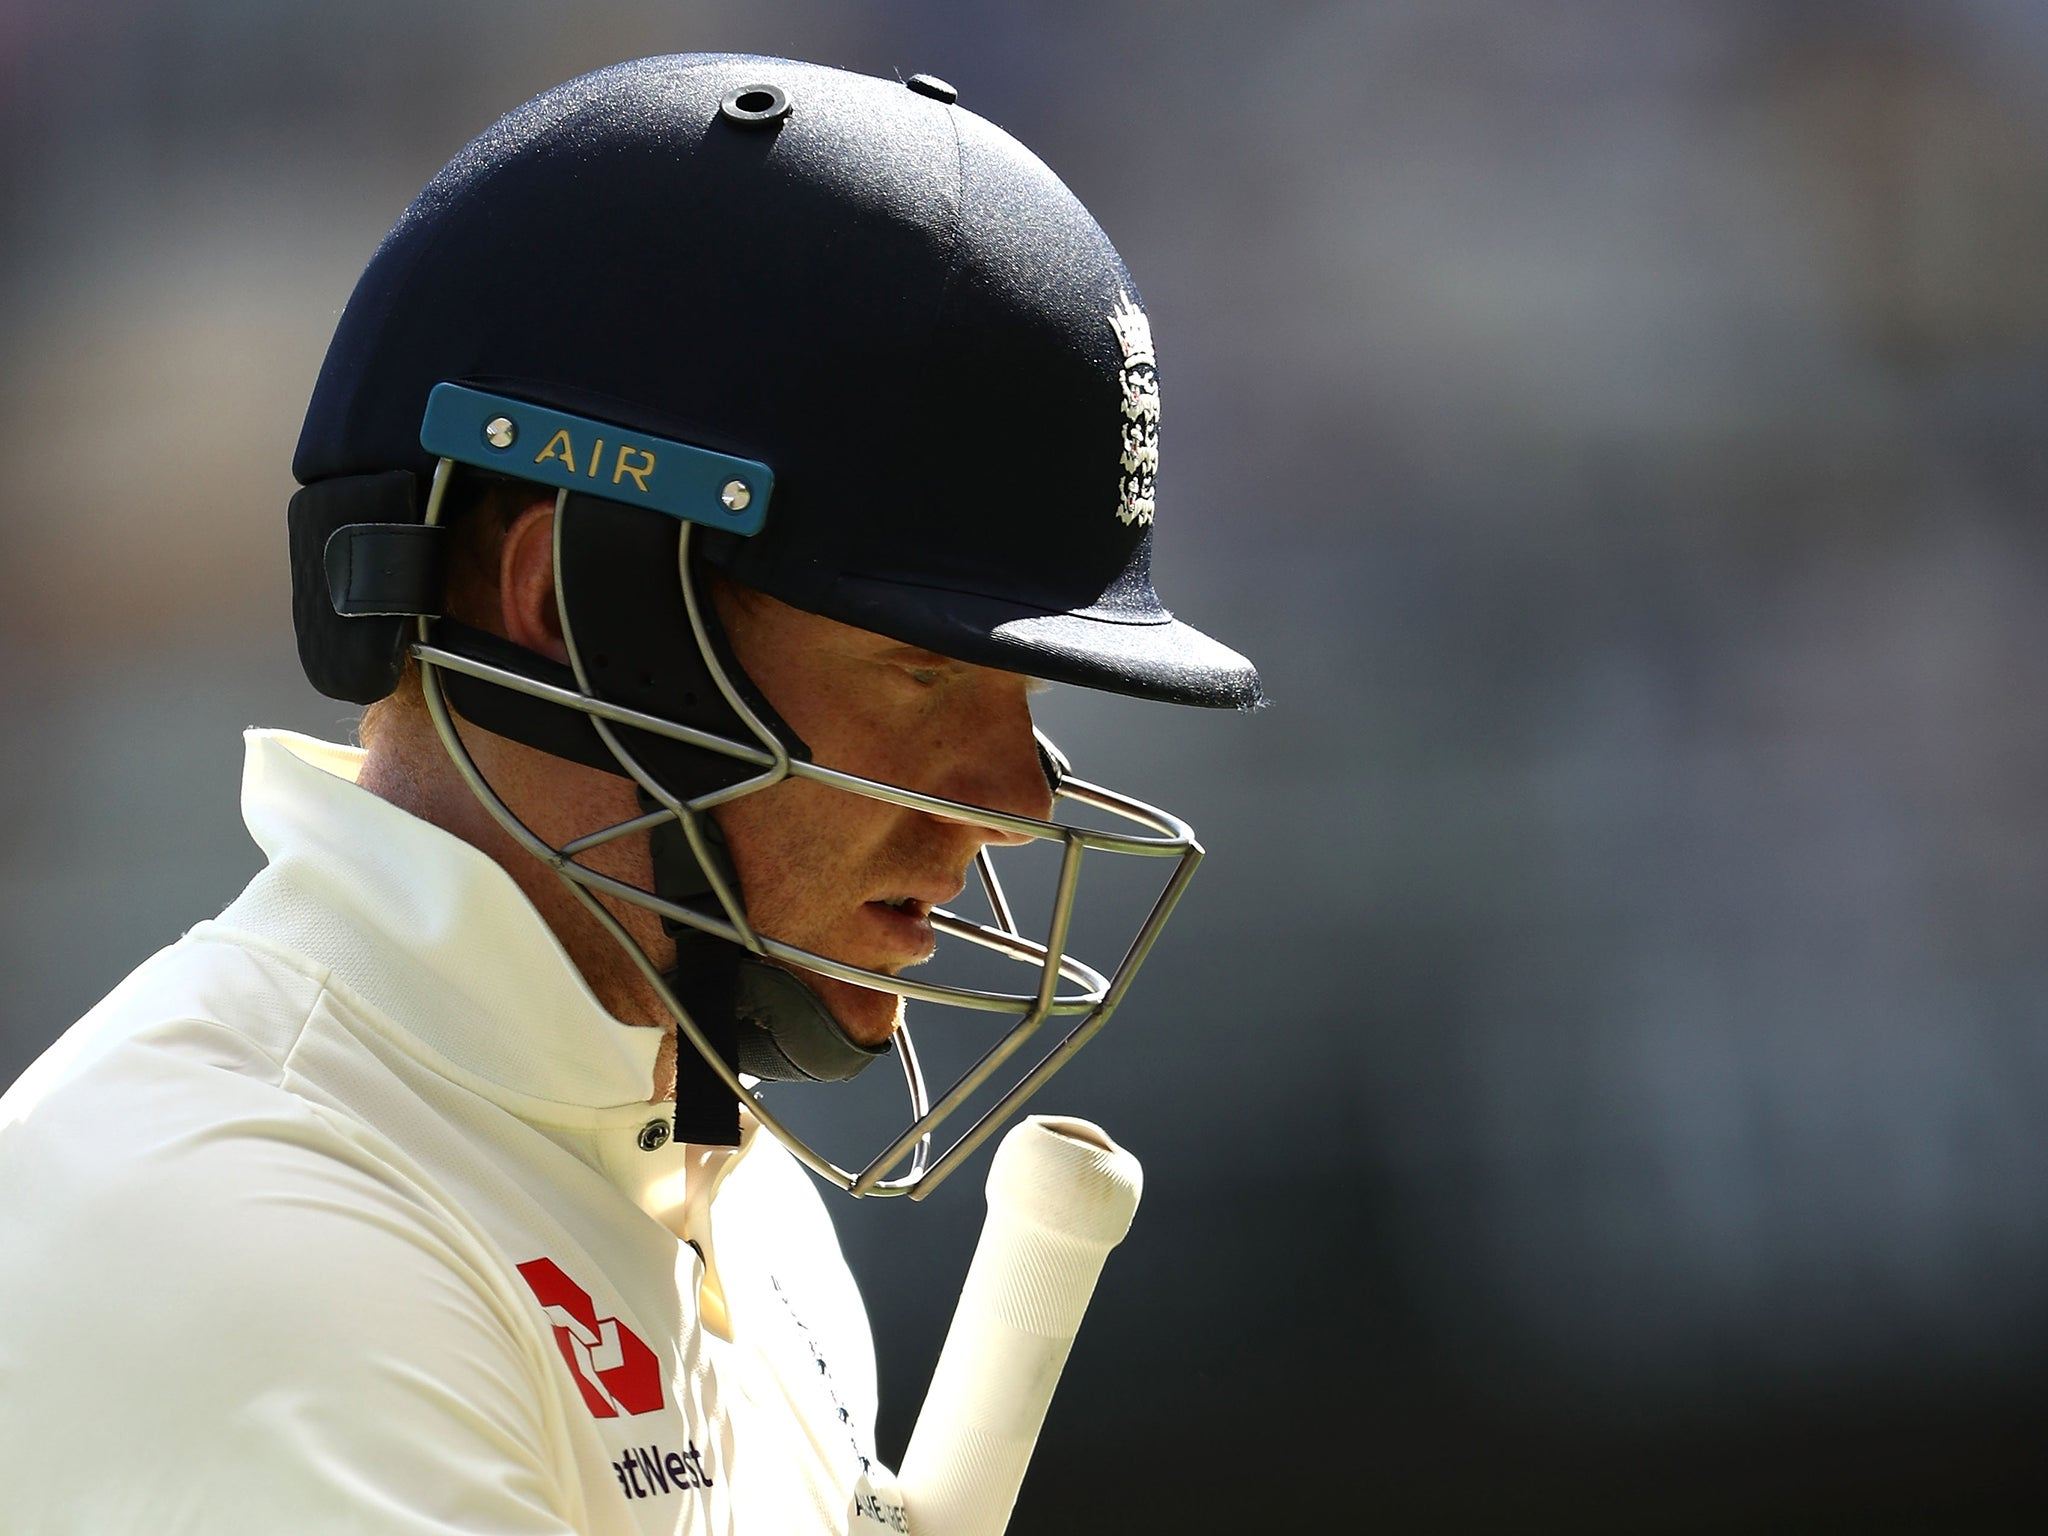 Jonny Bairstow 'headbutted' Australia's Cameron Bancroft on night out during the Ashes